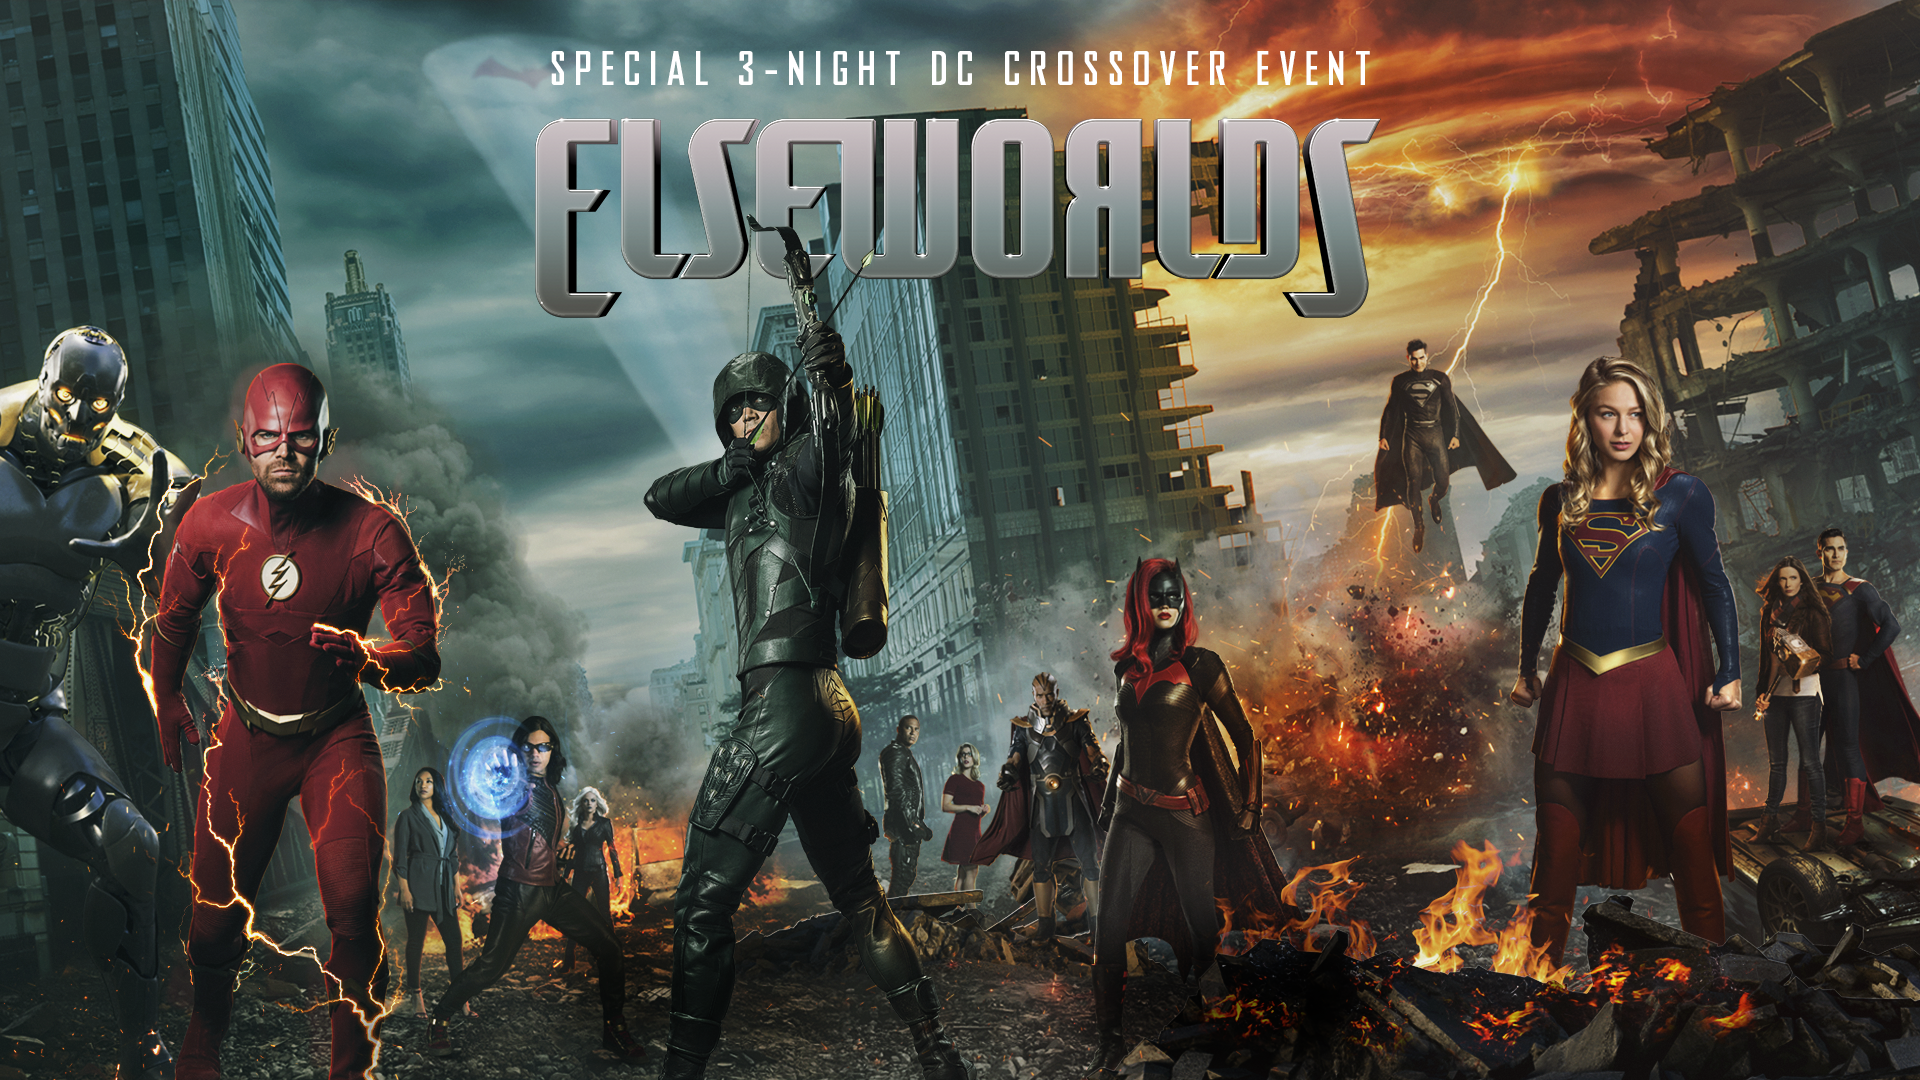 Destiny will be Rewritten in 3-Night ELSEWORLDS DC Crossover Event December 9-11th at 7pm on CW18!